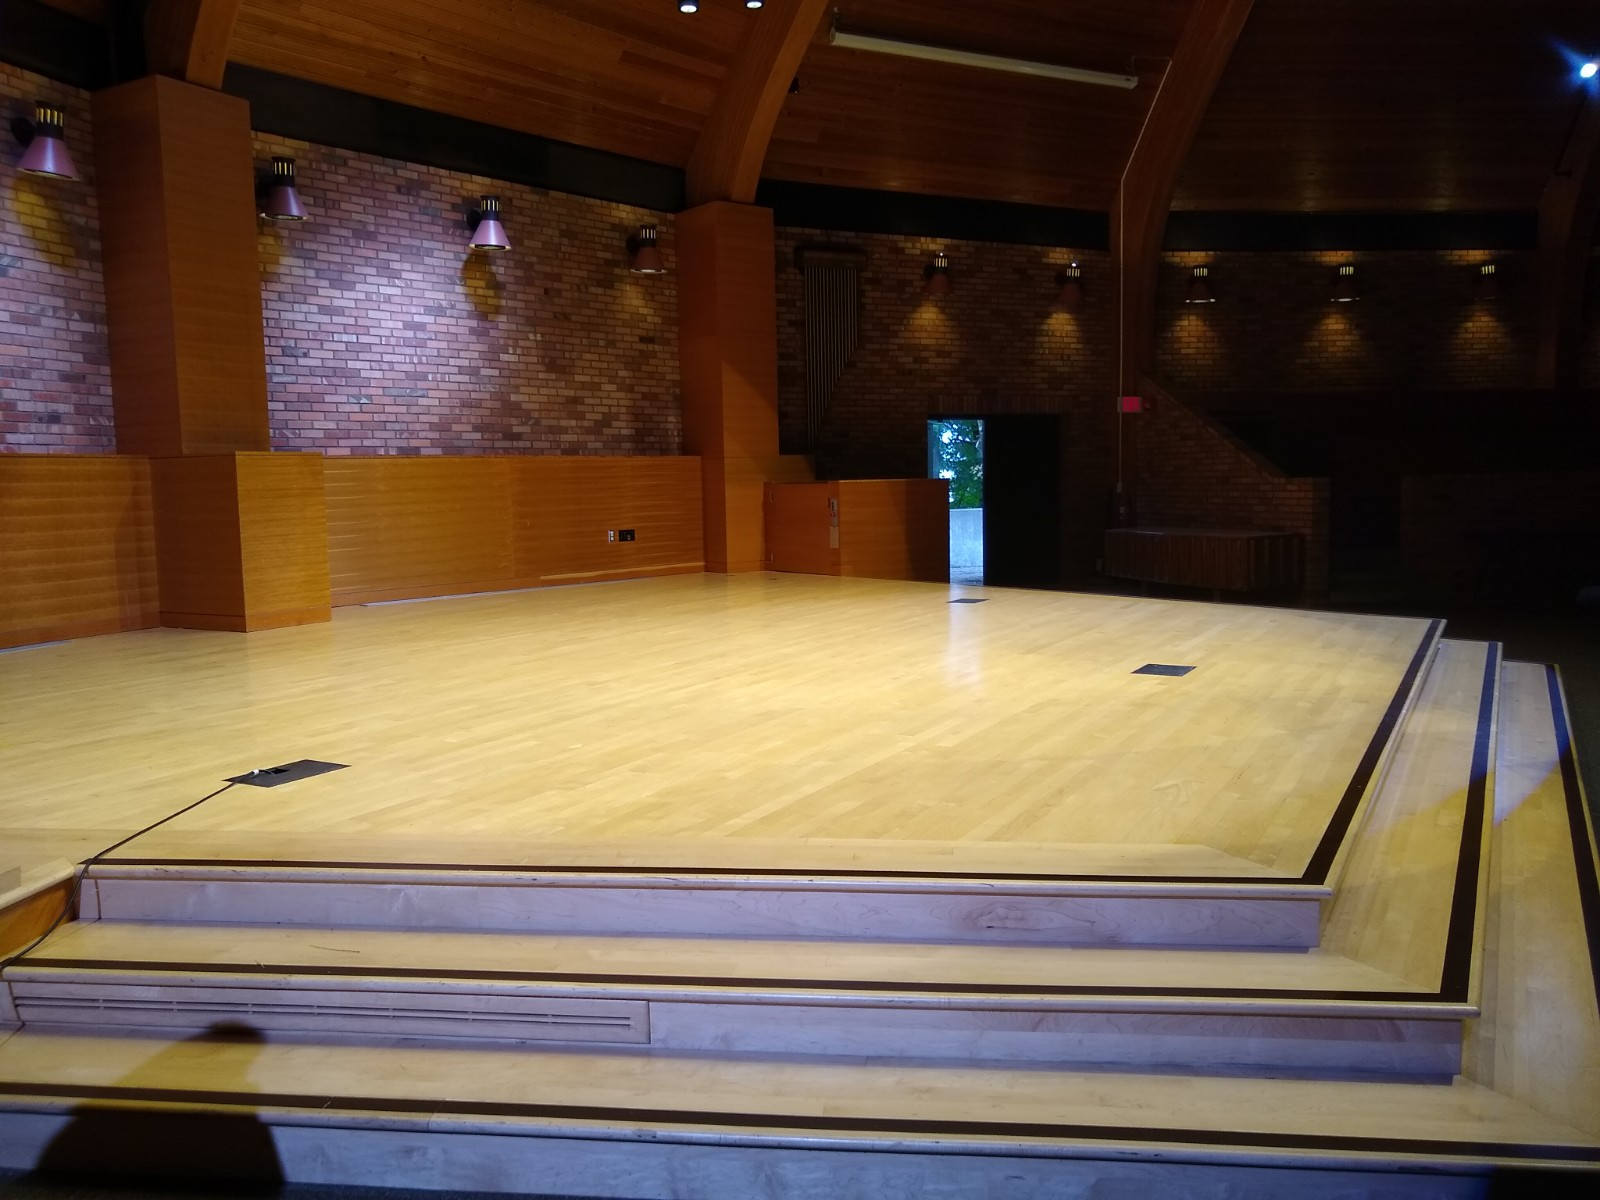 Stage, without decorative flats or curtains across back. (there will be lights and monitors along the edge of the stage, but plenty of space between them. )